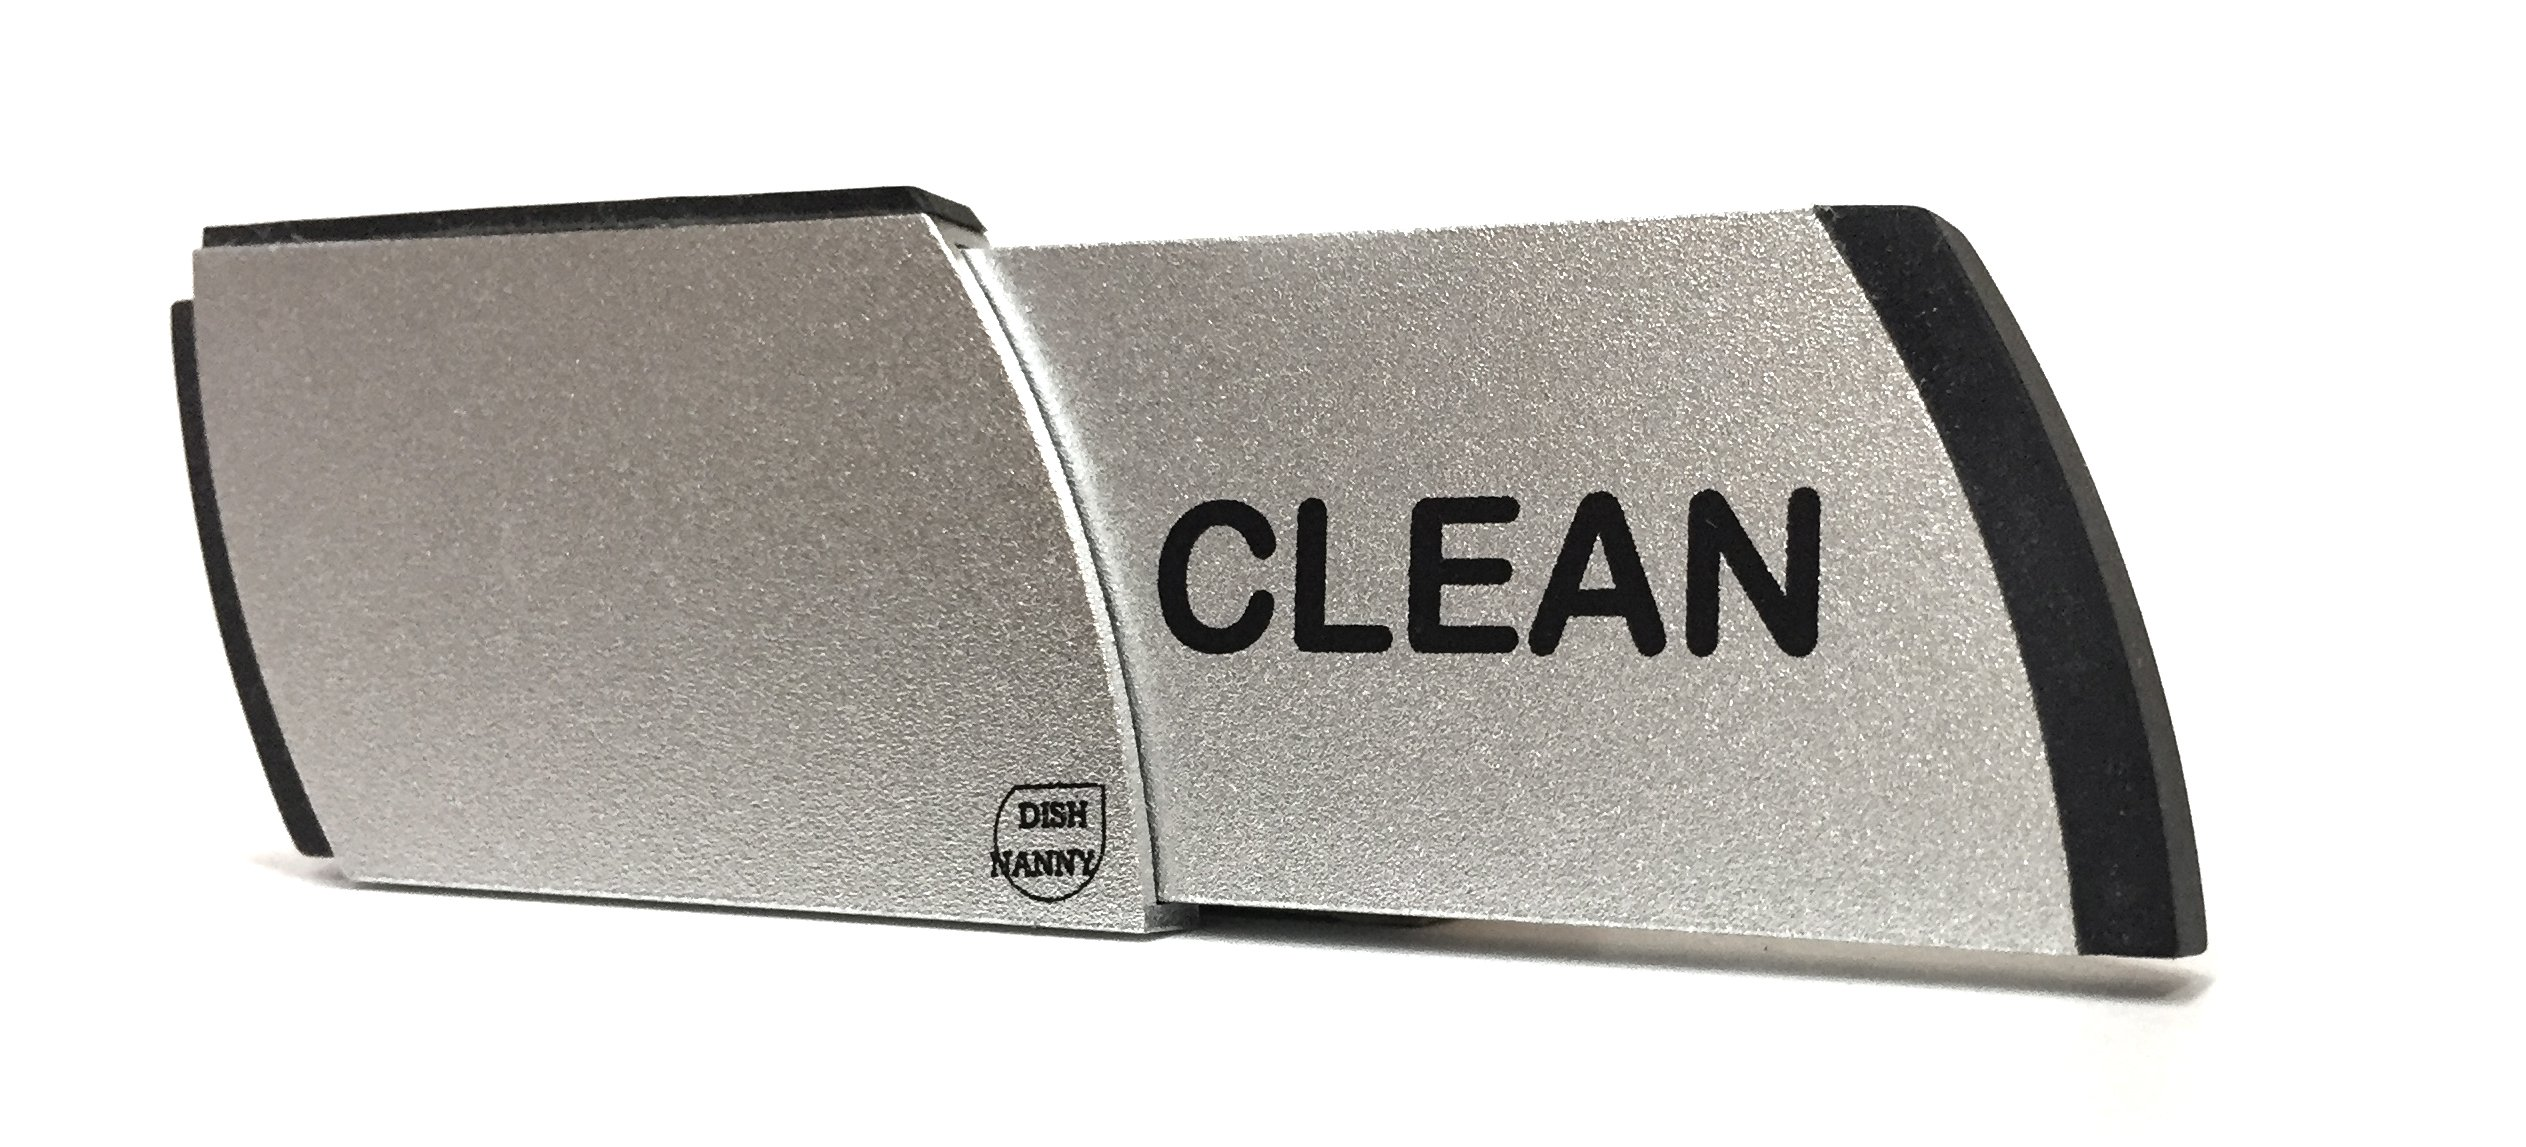 Premium Metal Dishwasher Magnet Clean Dirty Sign | Contemporary Indicator - Best Kitchen Gadgets for All Dishwashers - For Home or Office Organization Using Padded Magnets or 3M Tabs (Black Lettering) by SMACD